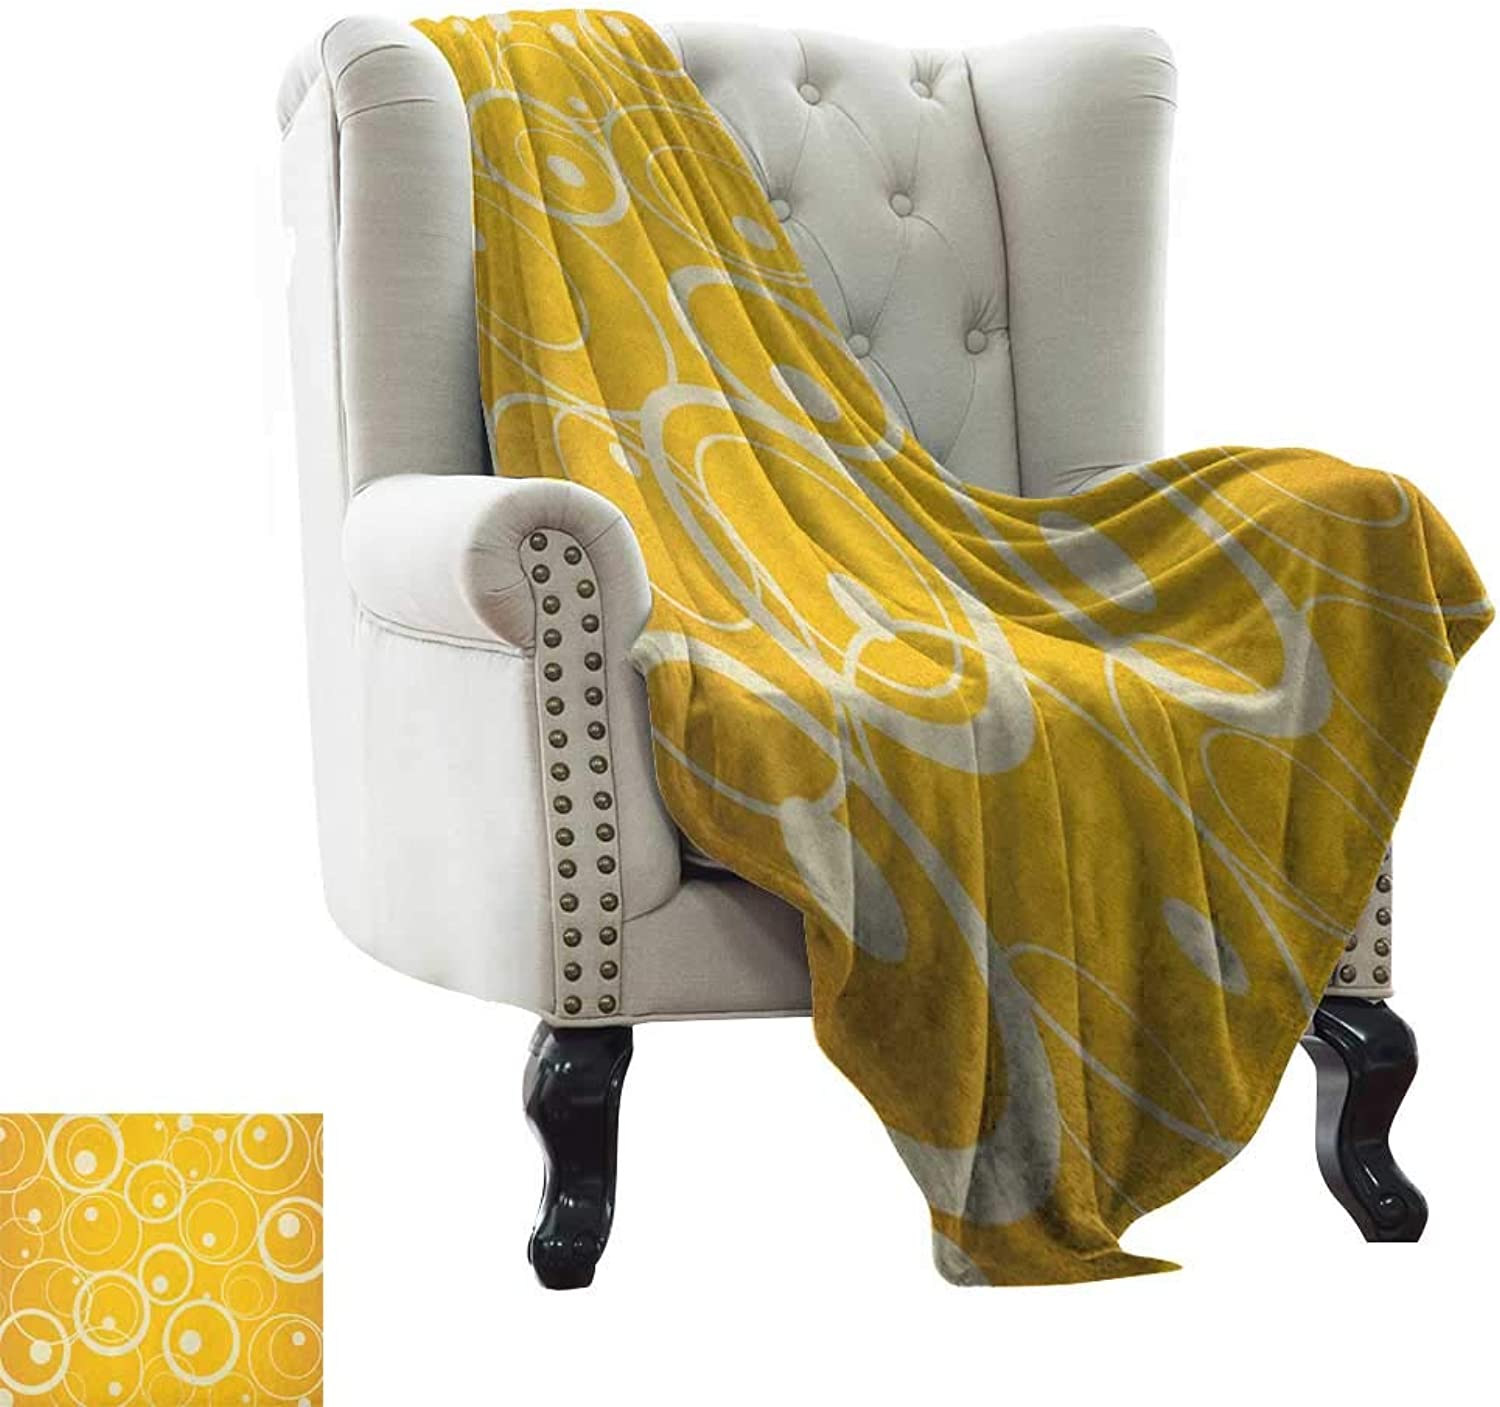 Fur Throw Blanket Vintage Yellow,Circles and Dots Monotone Geometric Shapes with Yellow Background, Yellow Pale Yellow Weighted for Adults Kids, Better Deeper Sleep 35 x60